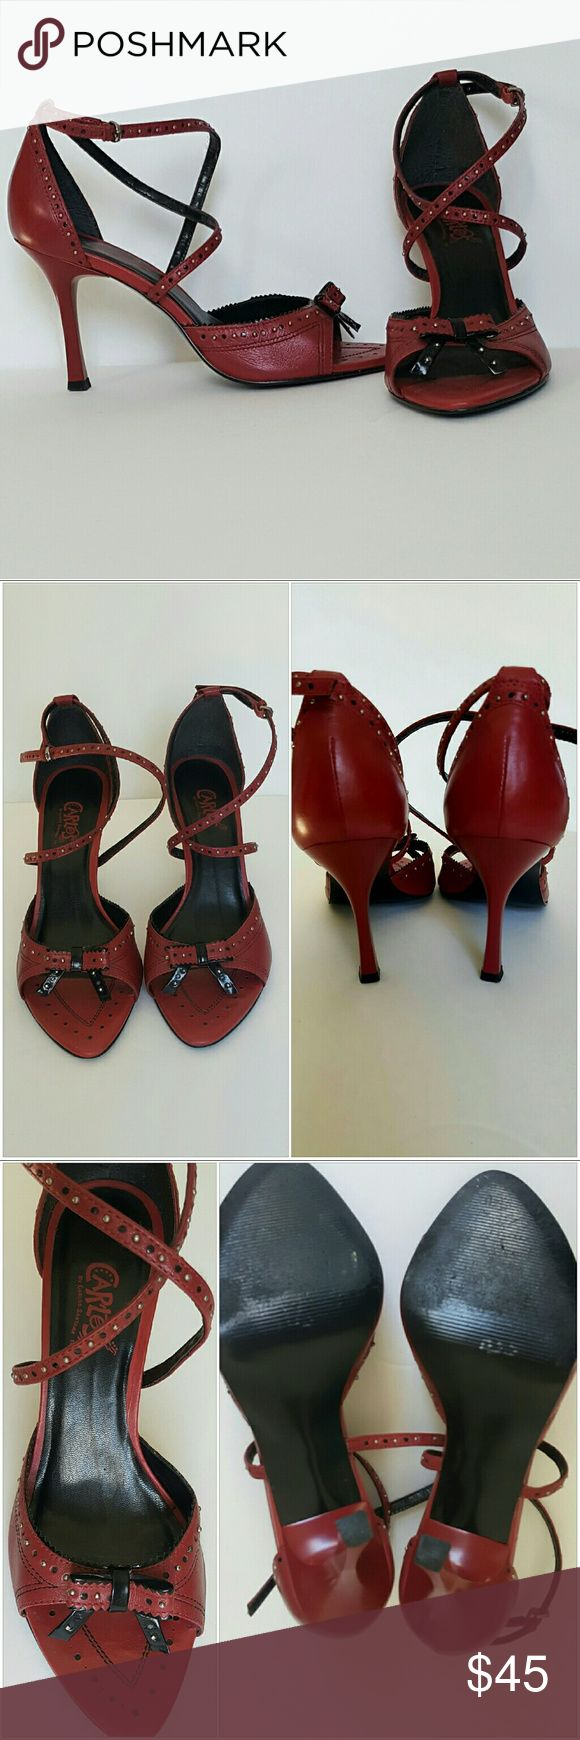 Carlos by Carlos Santana red leather sandals sz9 Carlos by Carlos Santana red studded leather ankle strap sandals  size 9 padded foot bed made in Brazil Carlos Santana Shoes